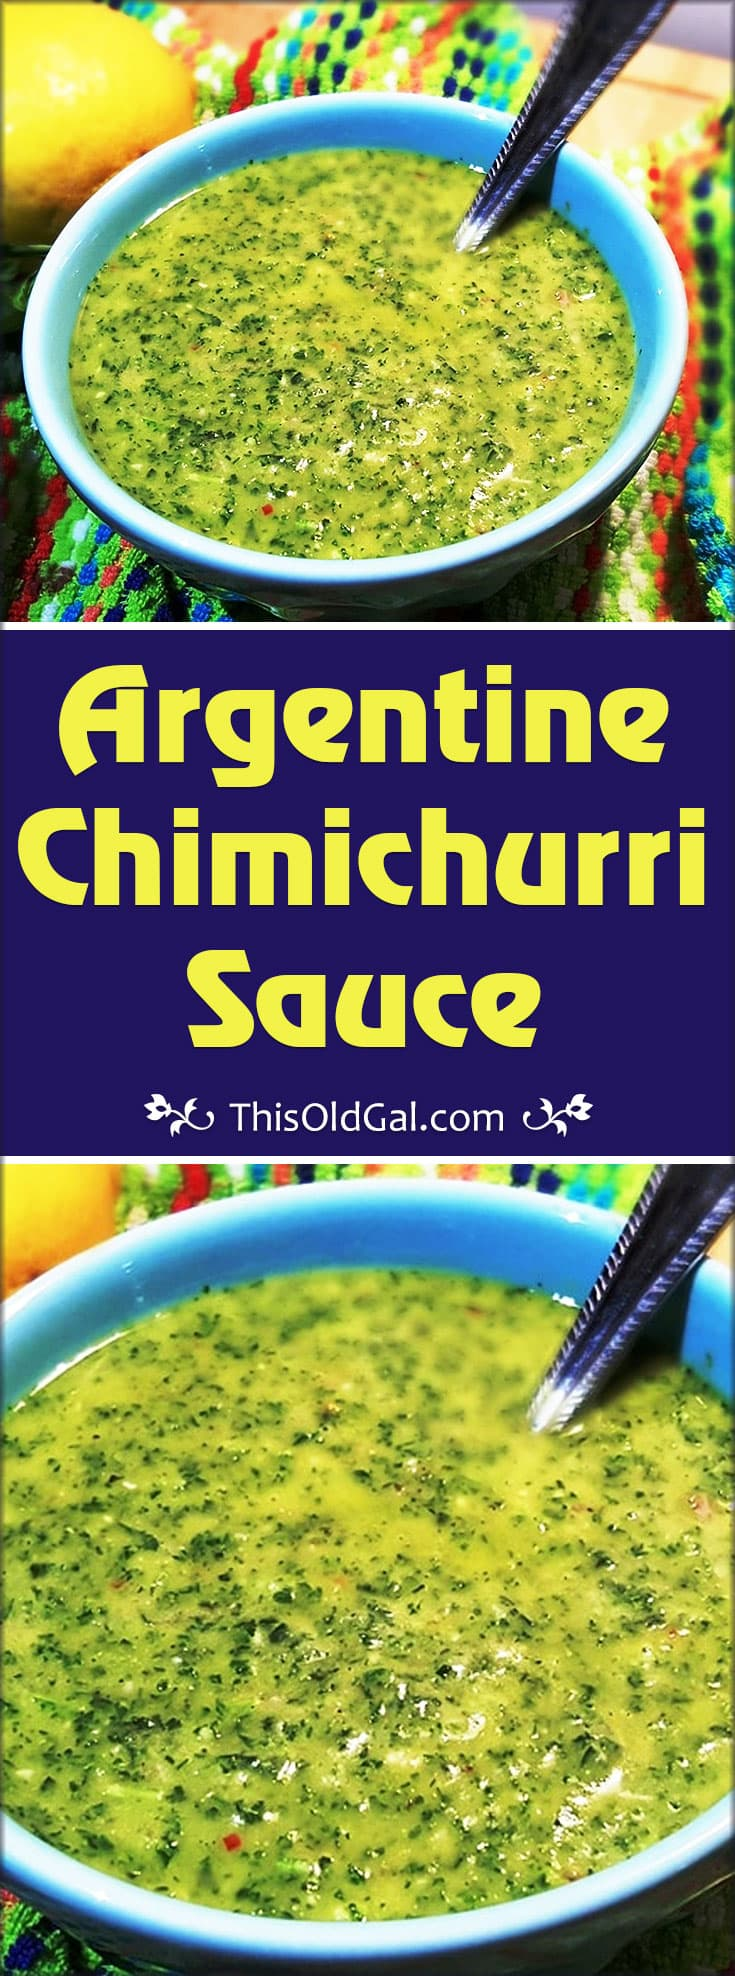 Argentine Chimichurri Sauce (Sauce Used for Grilled Meat)